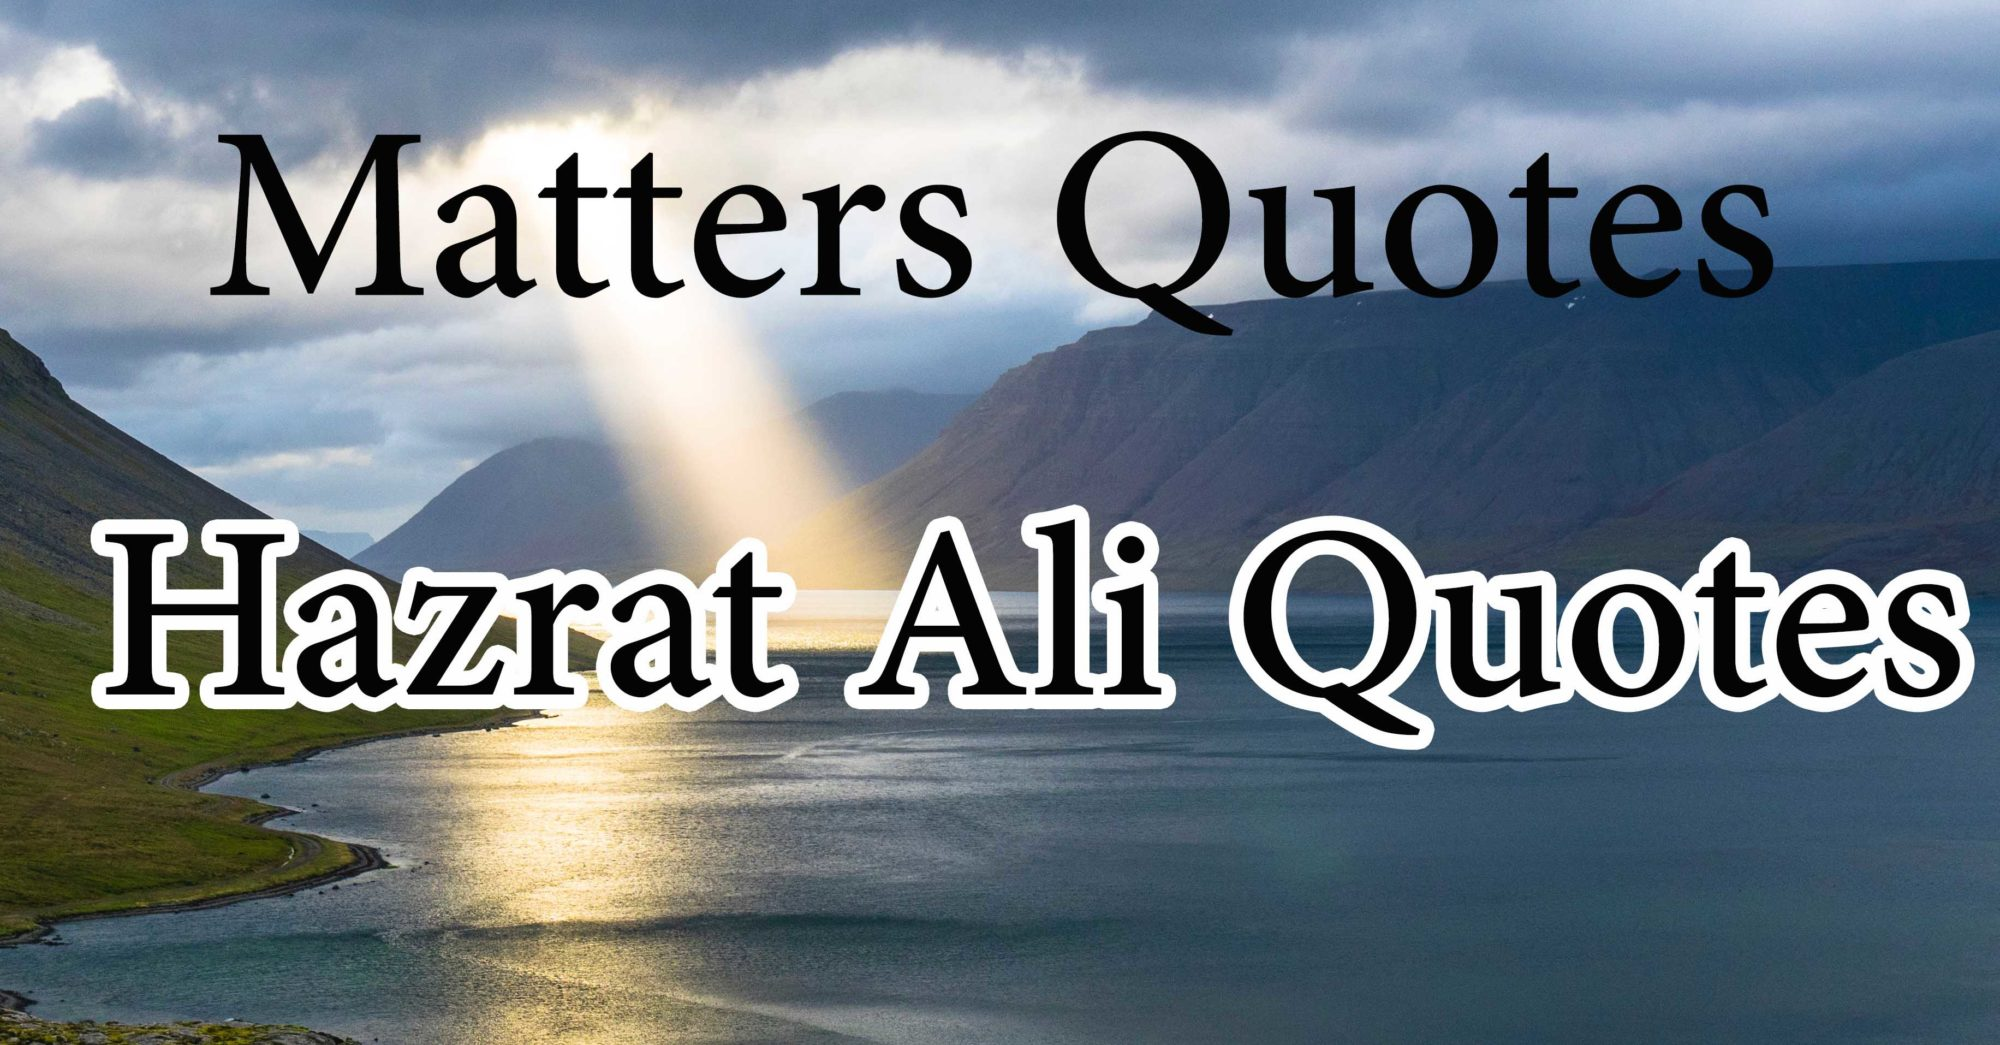 matters quotes hazrat ali quotes in english